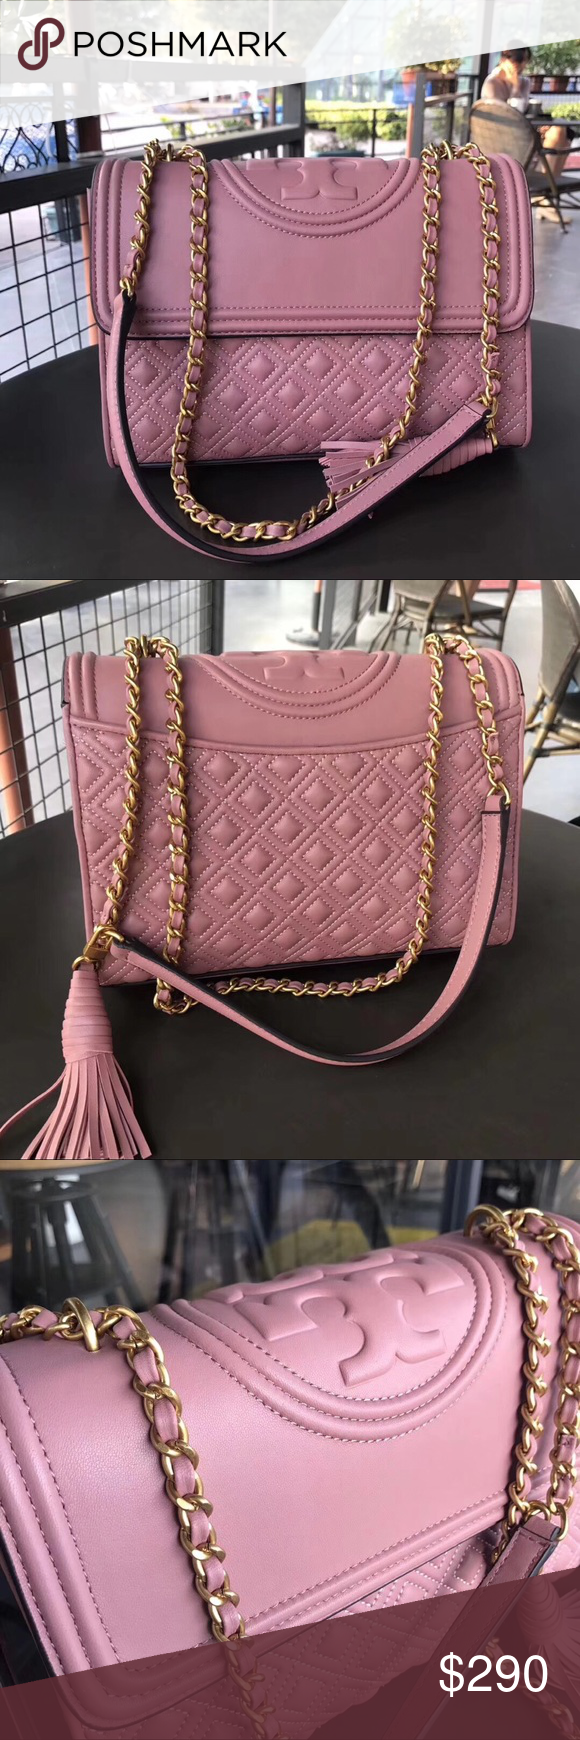 85be9a48d8d Tory burch fleming convertible shoulder bag NEW WITH TAG. COMES WITH DUSTBAG.  Bag Length